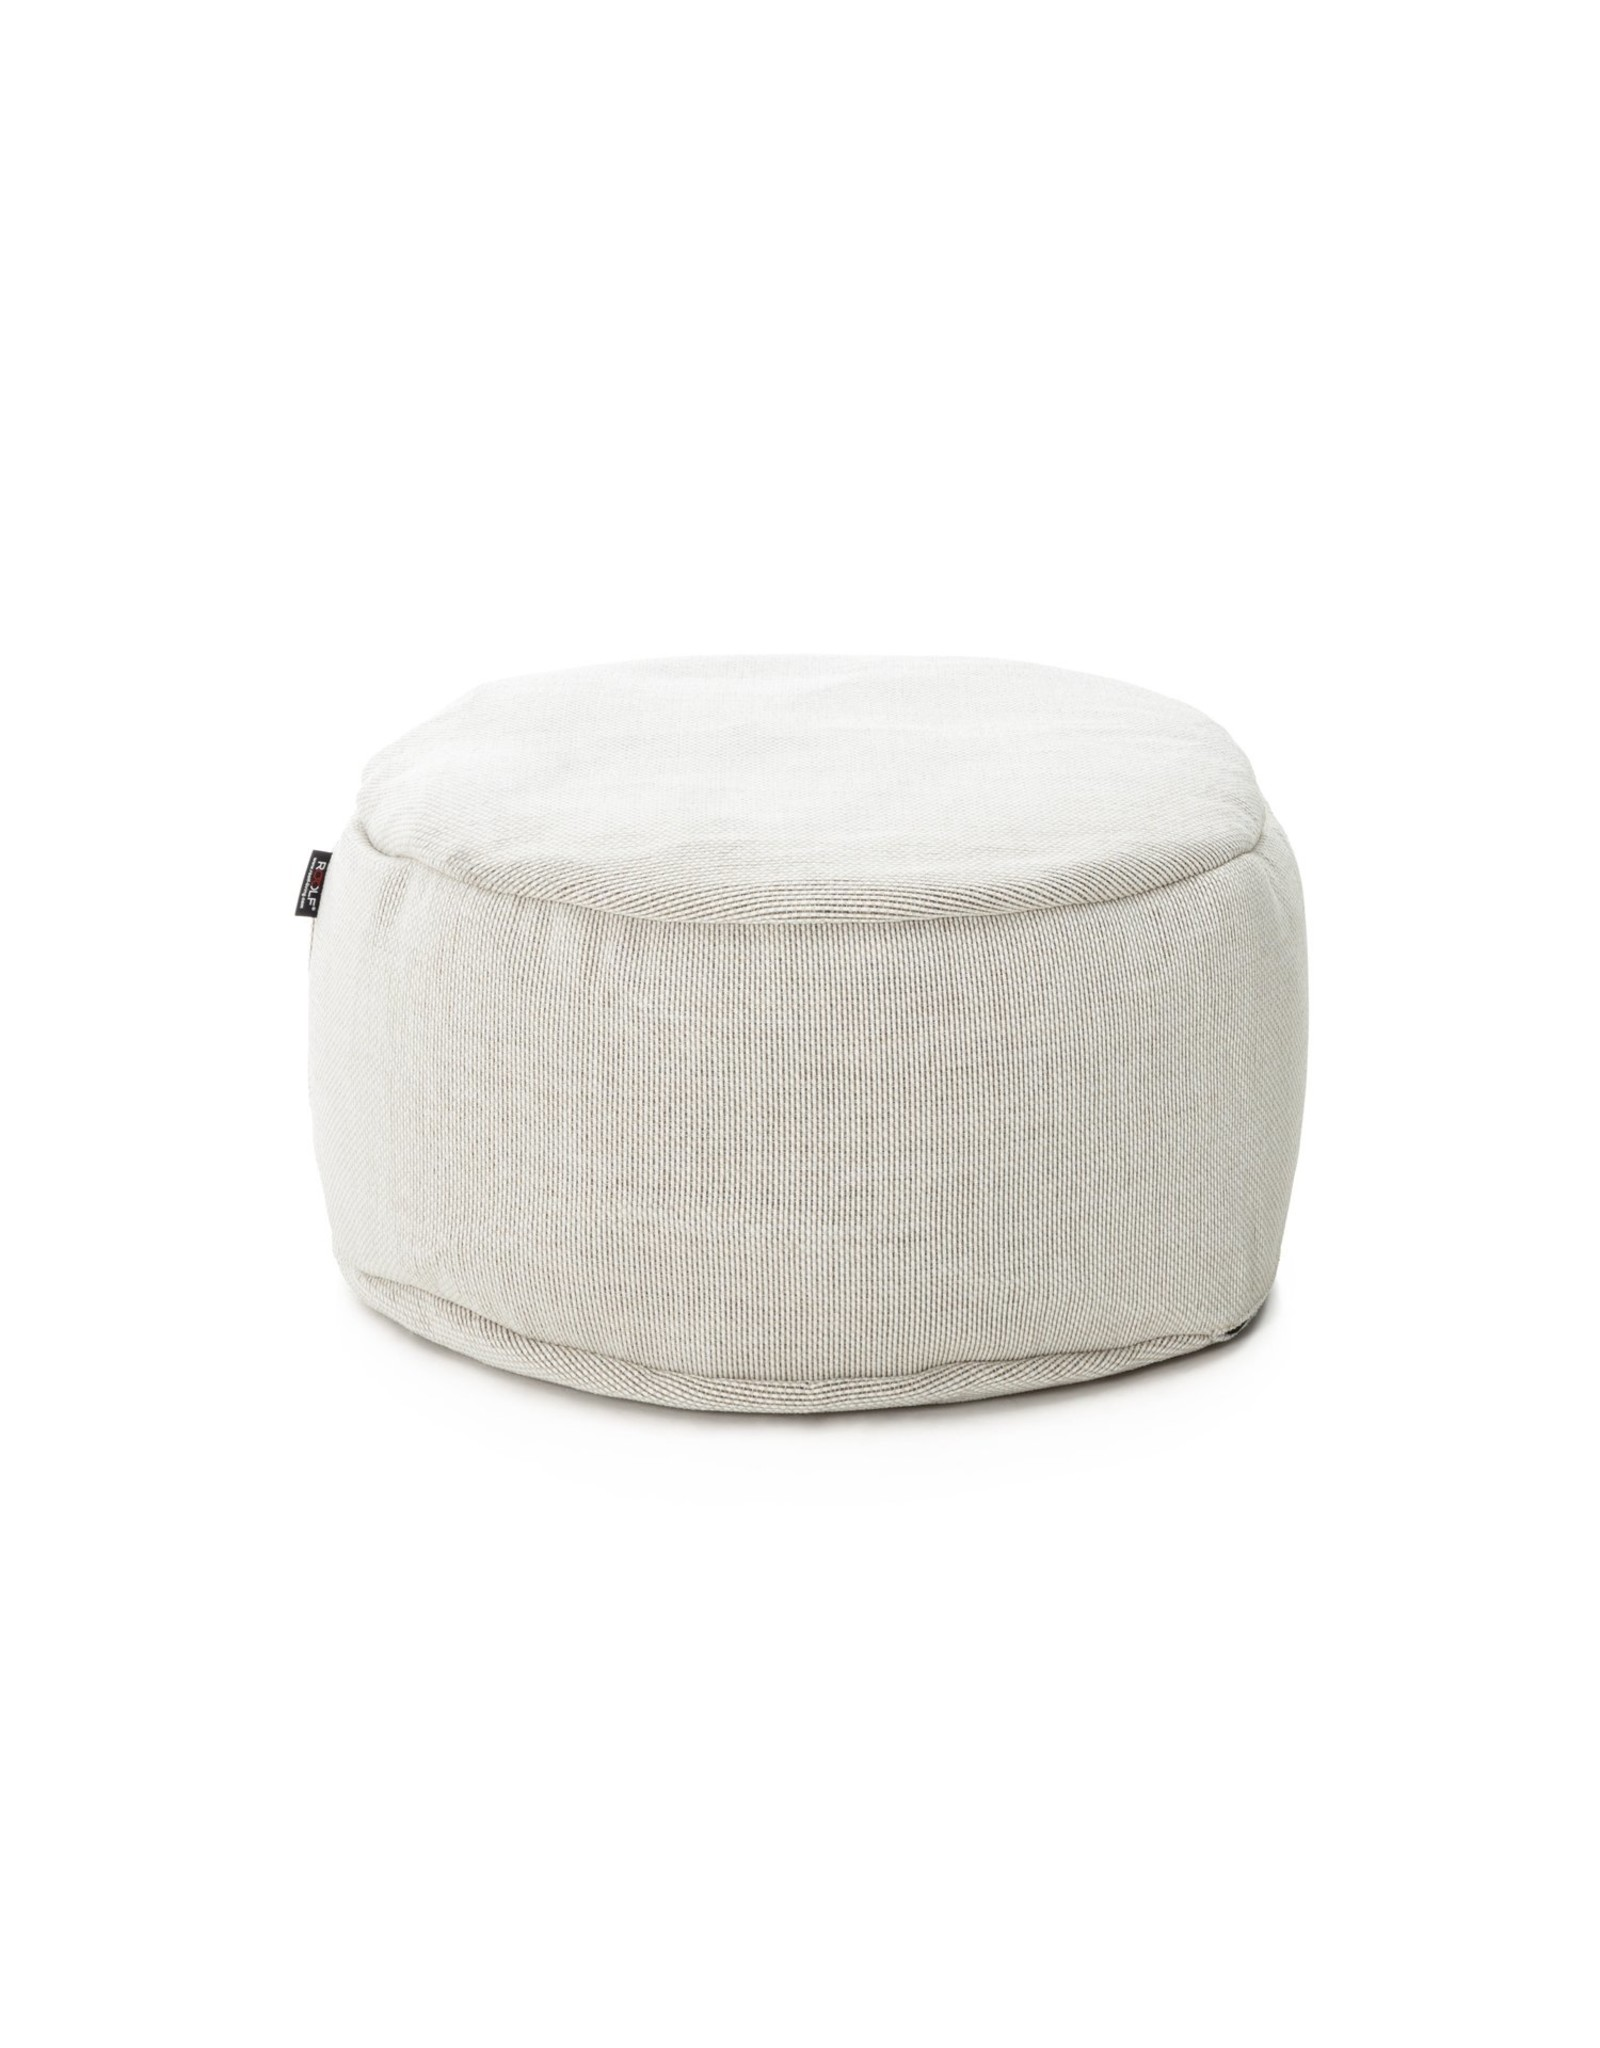 ROOLF LIVING DOTTY ROUND 70 CM - WIT